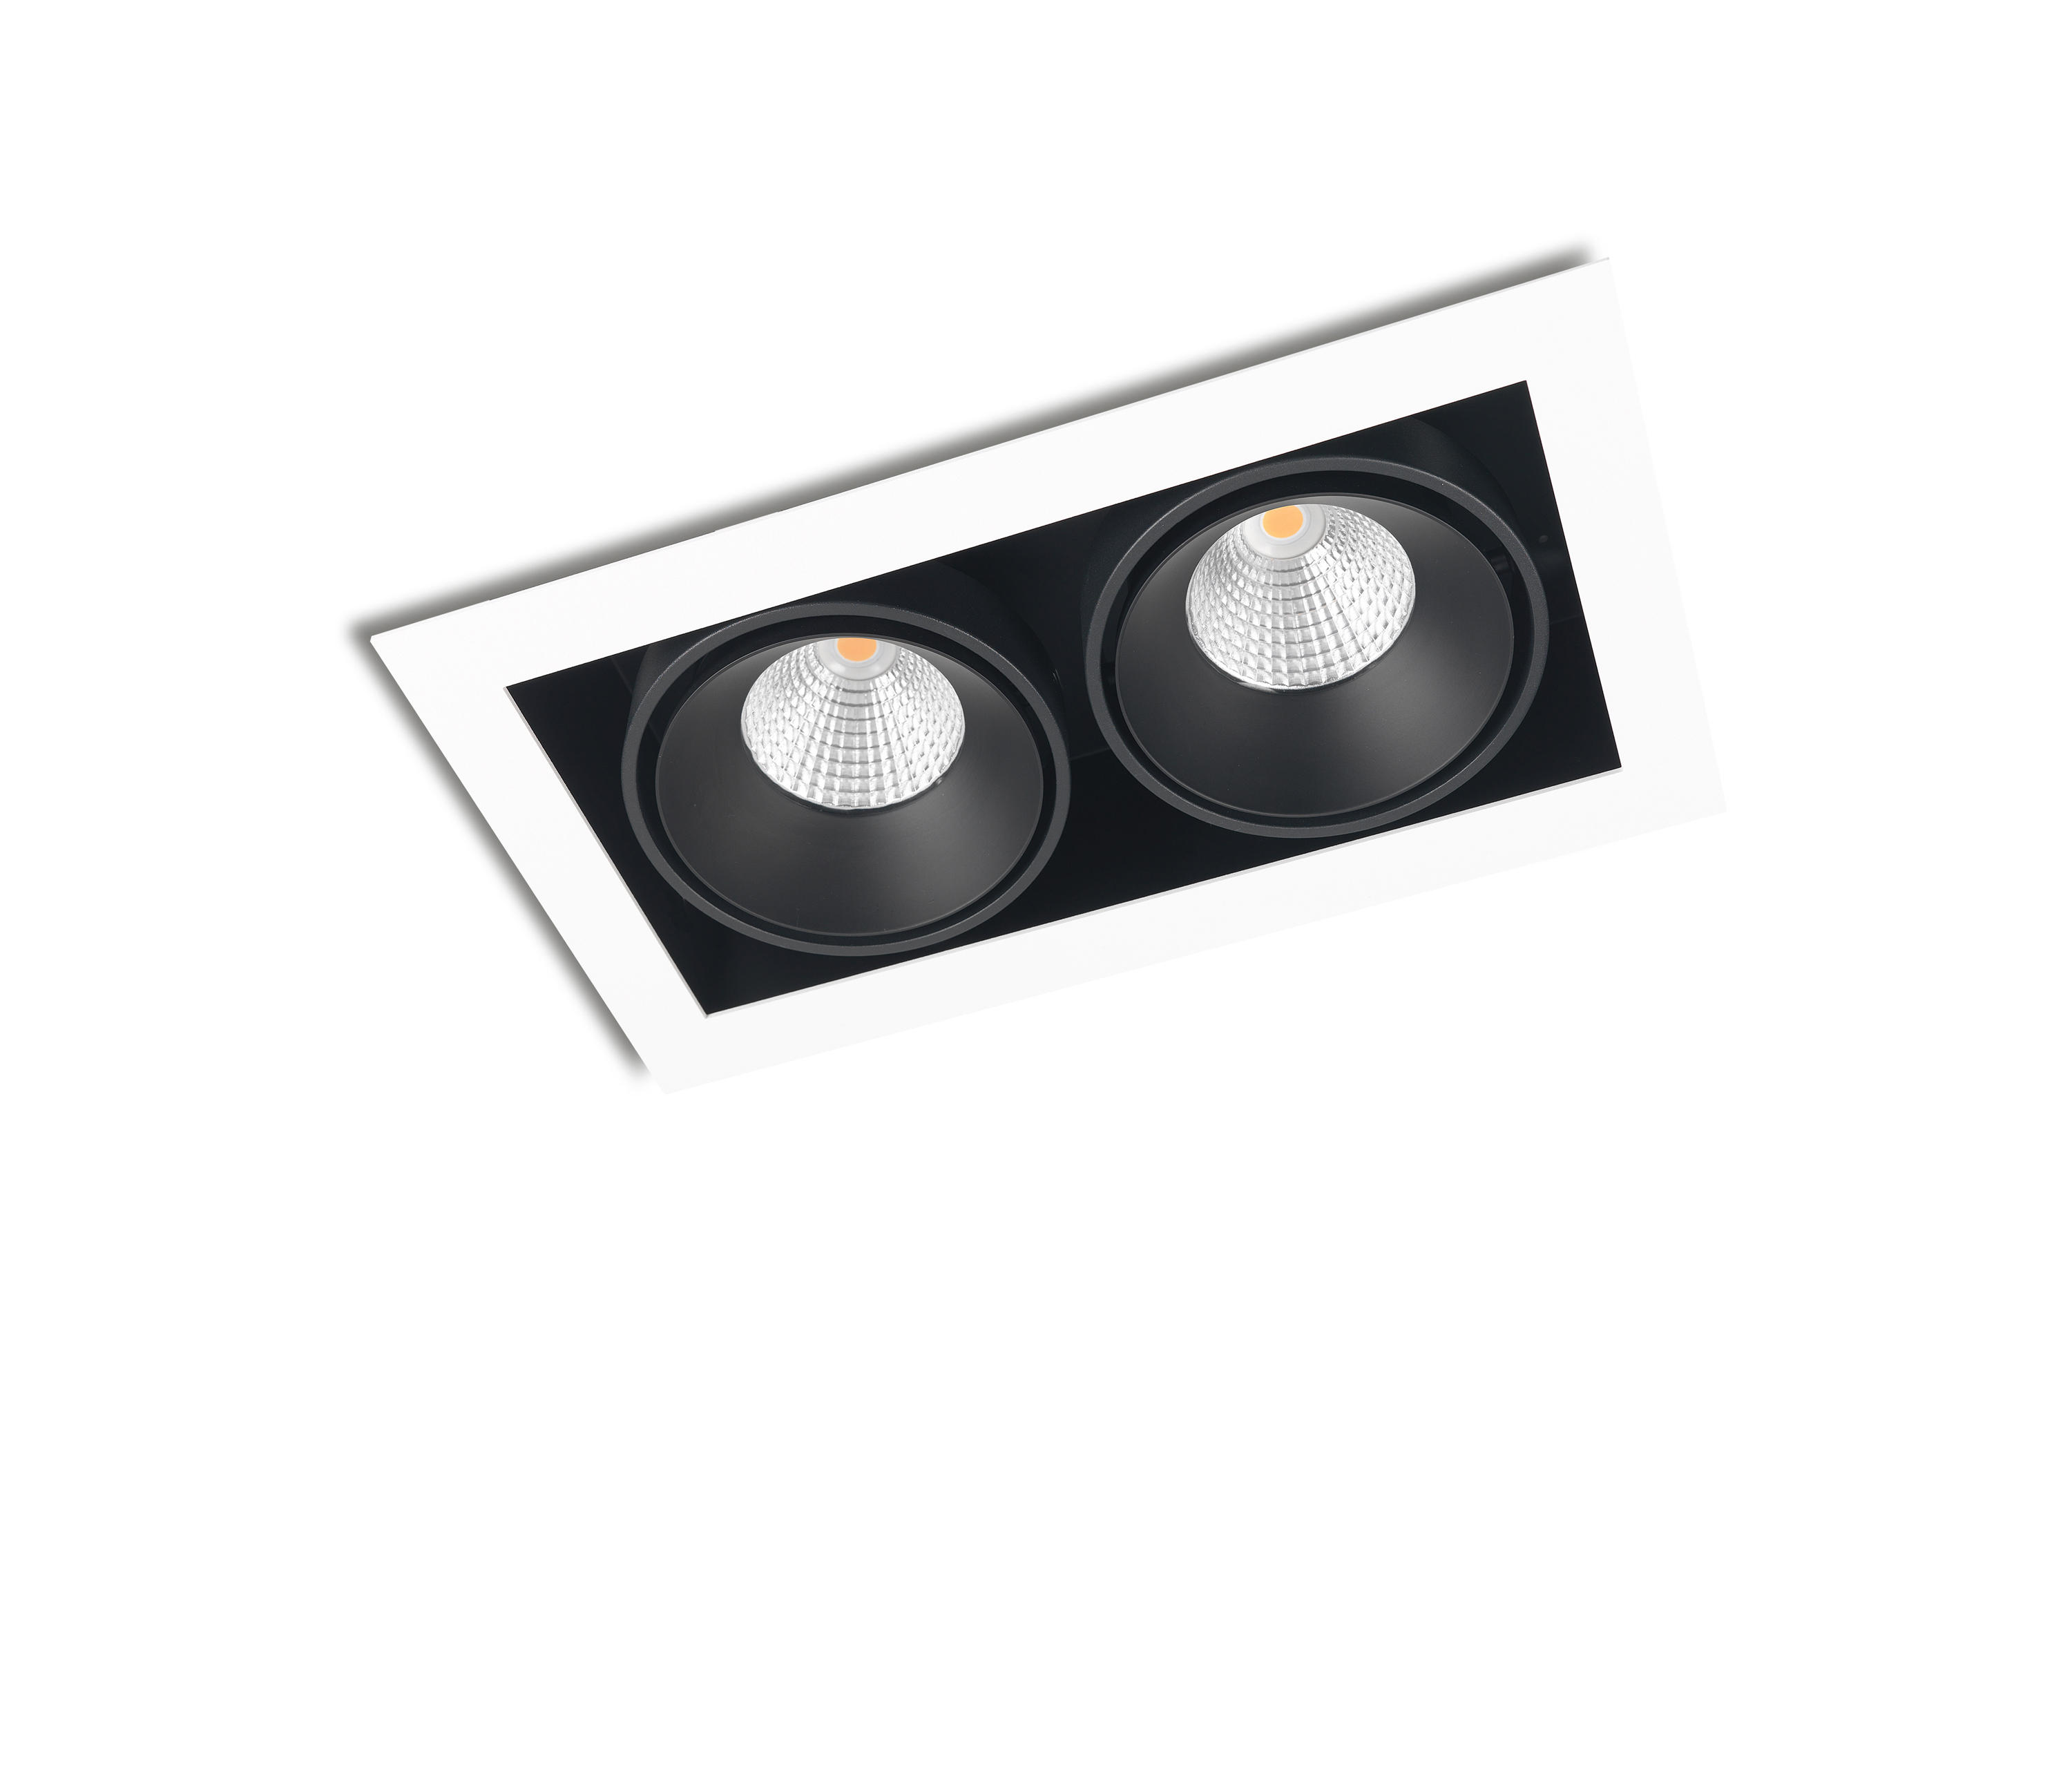 FRAME DOUBLE 2X CONE COB LED - Recessed ceiling lights from Orbit ...